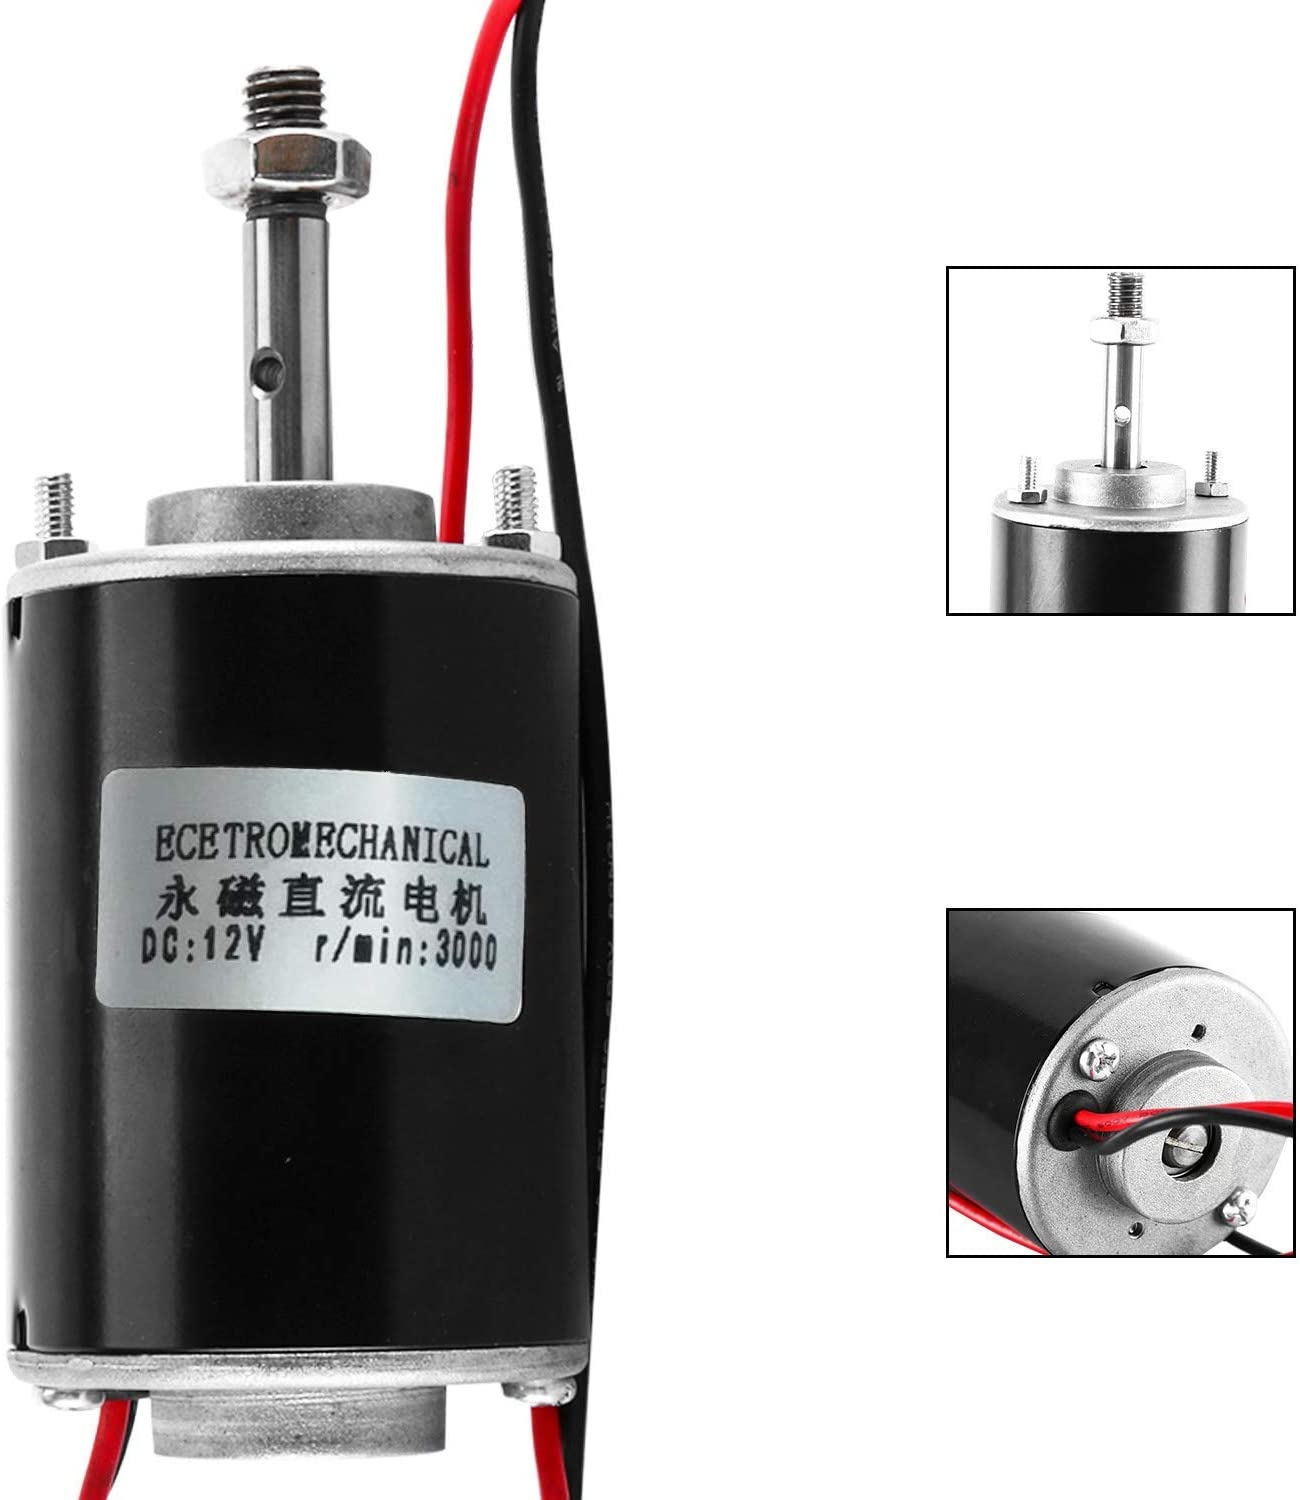 Electric Drill DC Motor 24V 5500rpm Polisher Small Generator Cutter Cotton Candy Machine 12//24V 150W Large Power High Speed Brush DC Motor CW//CCW for DIY Generator